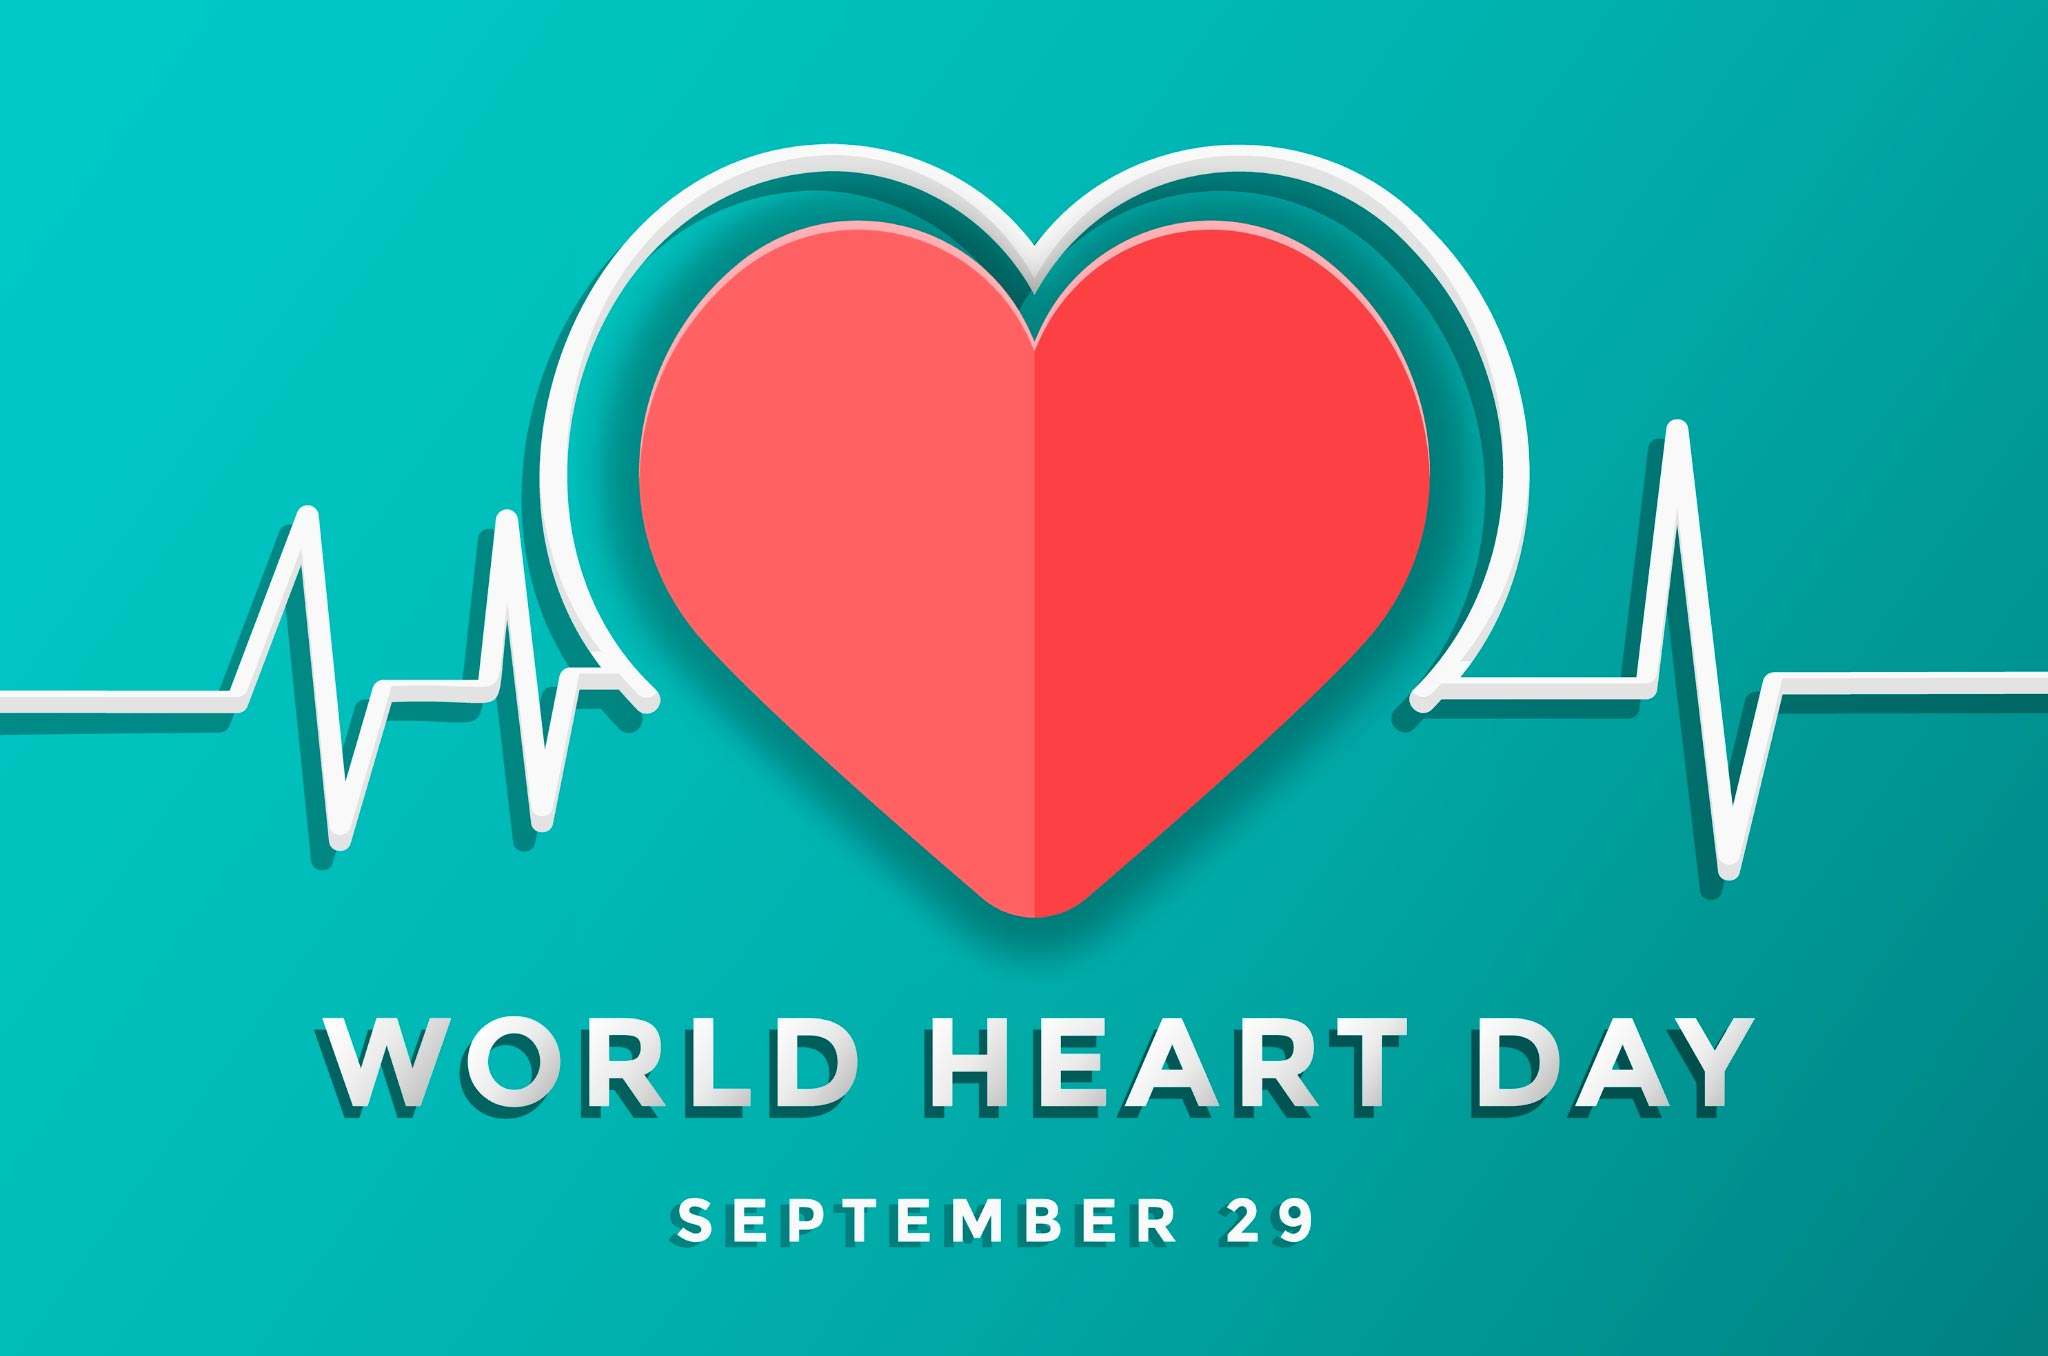 SUPPORT YOUR HEART 👍💚 EVERY DAY! GET STARTED TODAY!